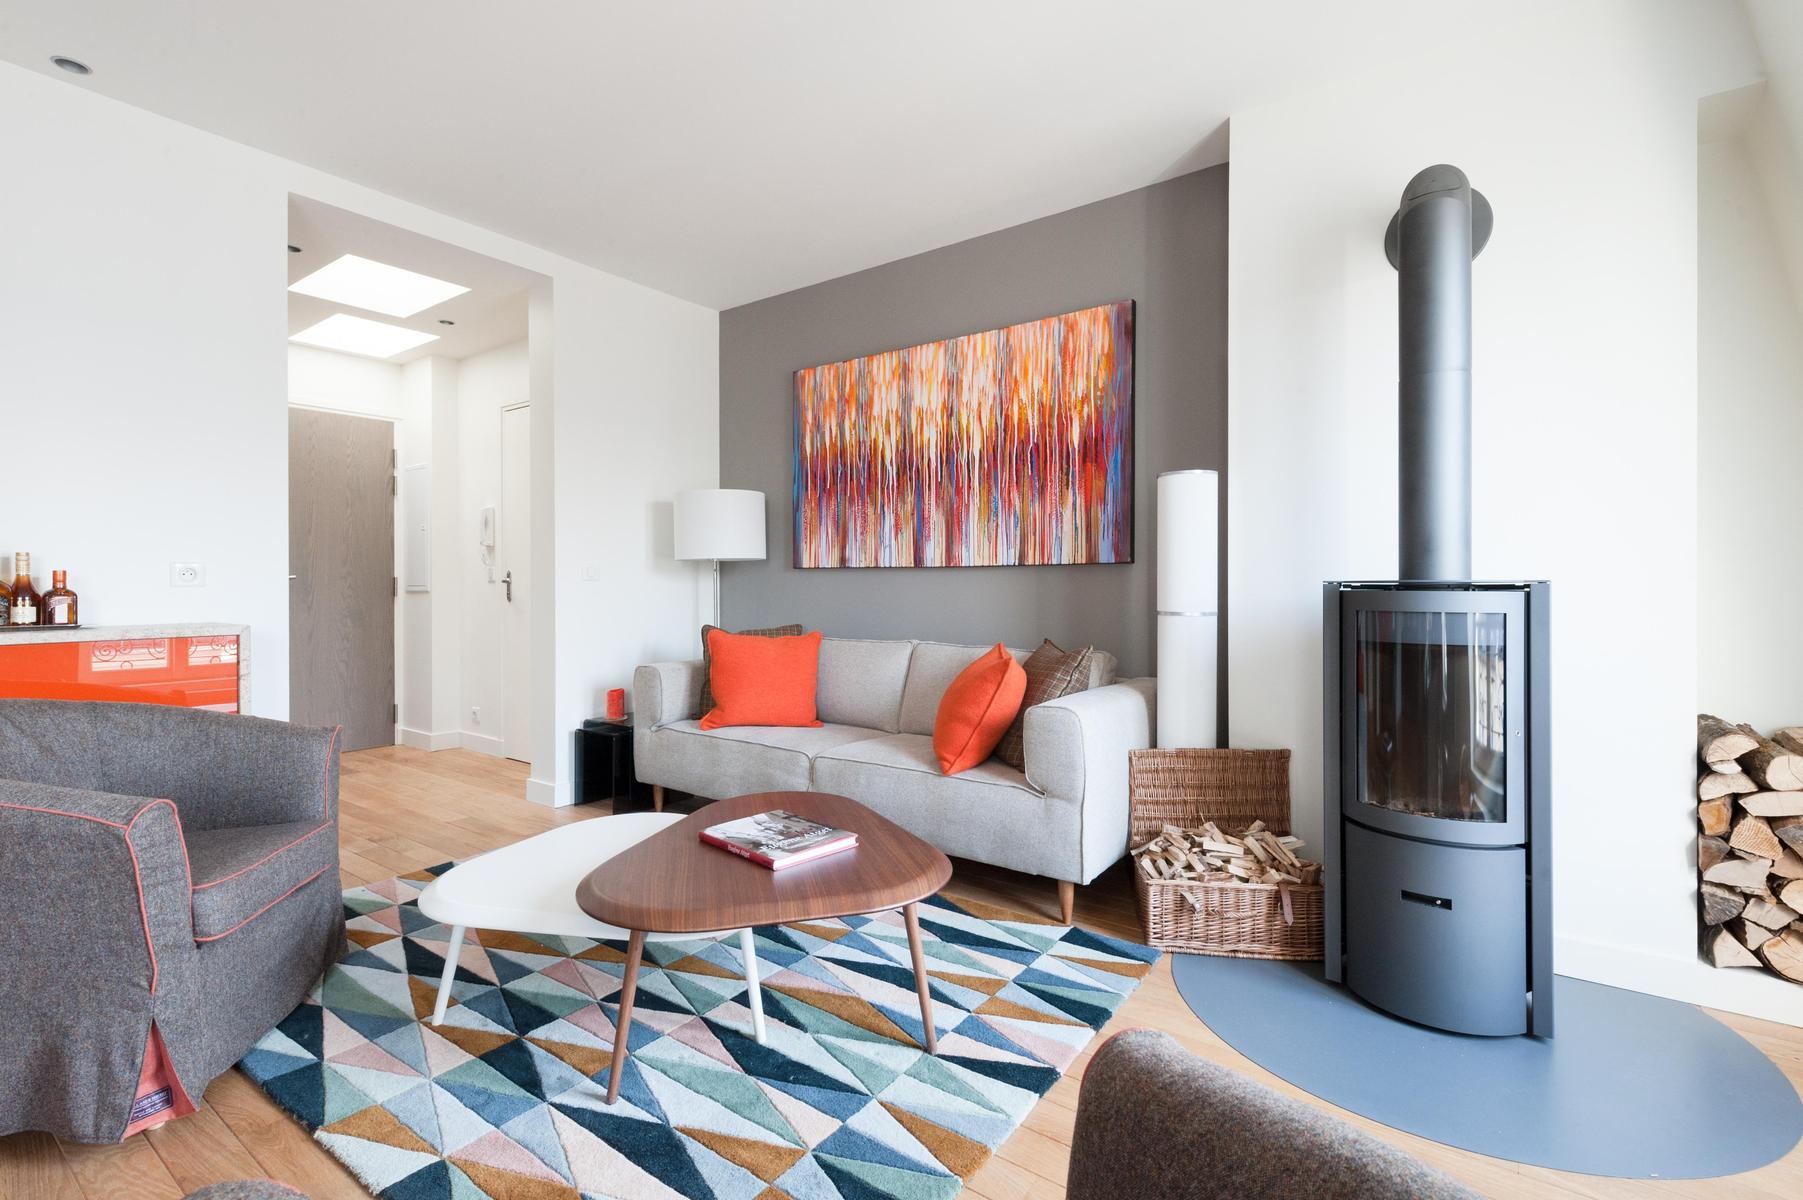 an ornamental wood burner dominates one corner of the living room fuses fifties shapes with Scandi s